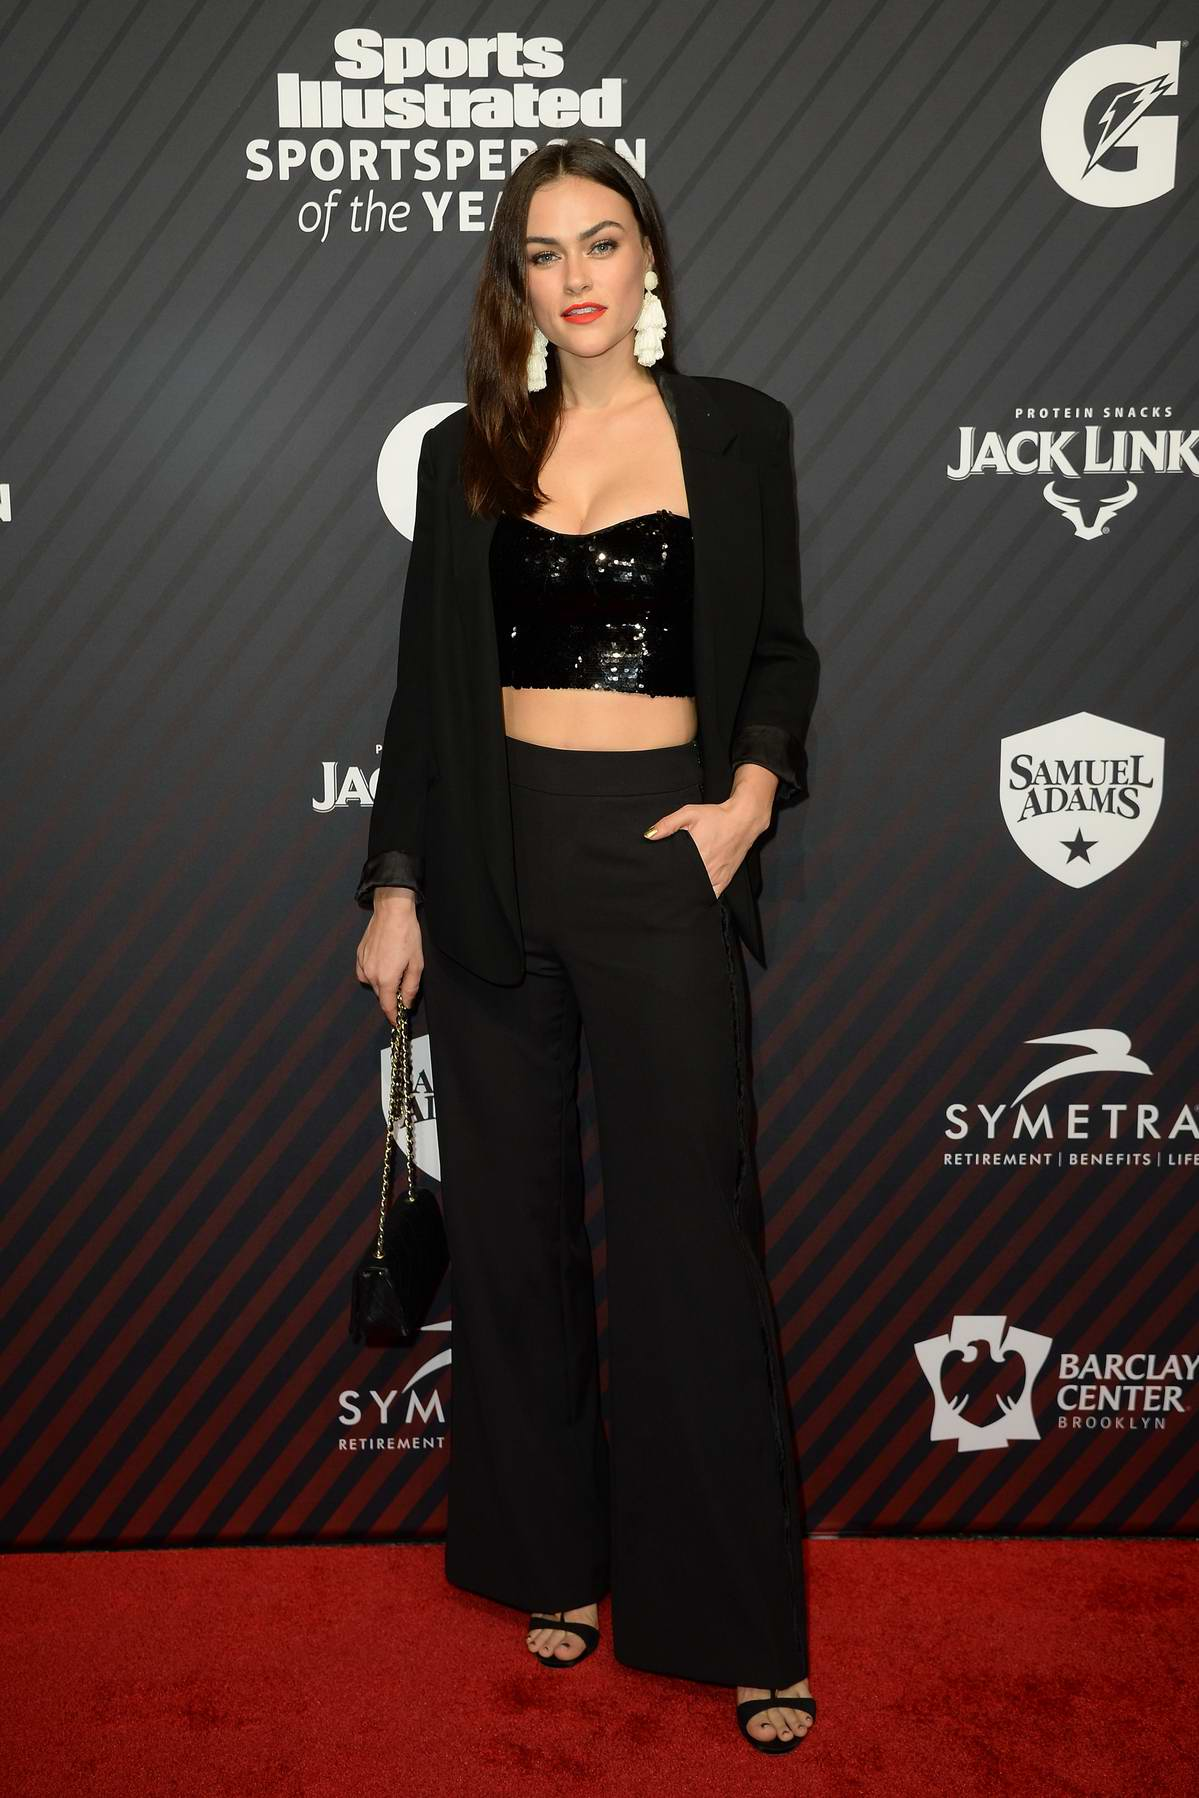 Myla Dalbesio at the Sports Illustrated Sportsperson of the Year Awards at Barclay Center in New York